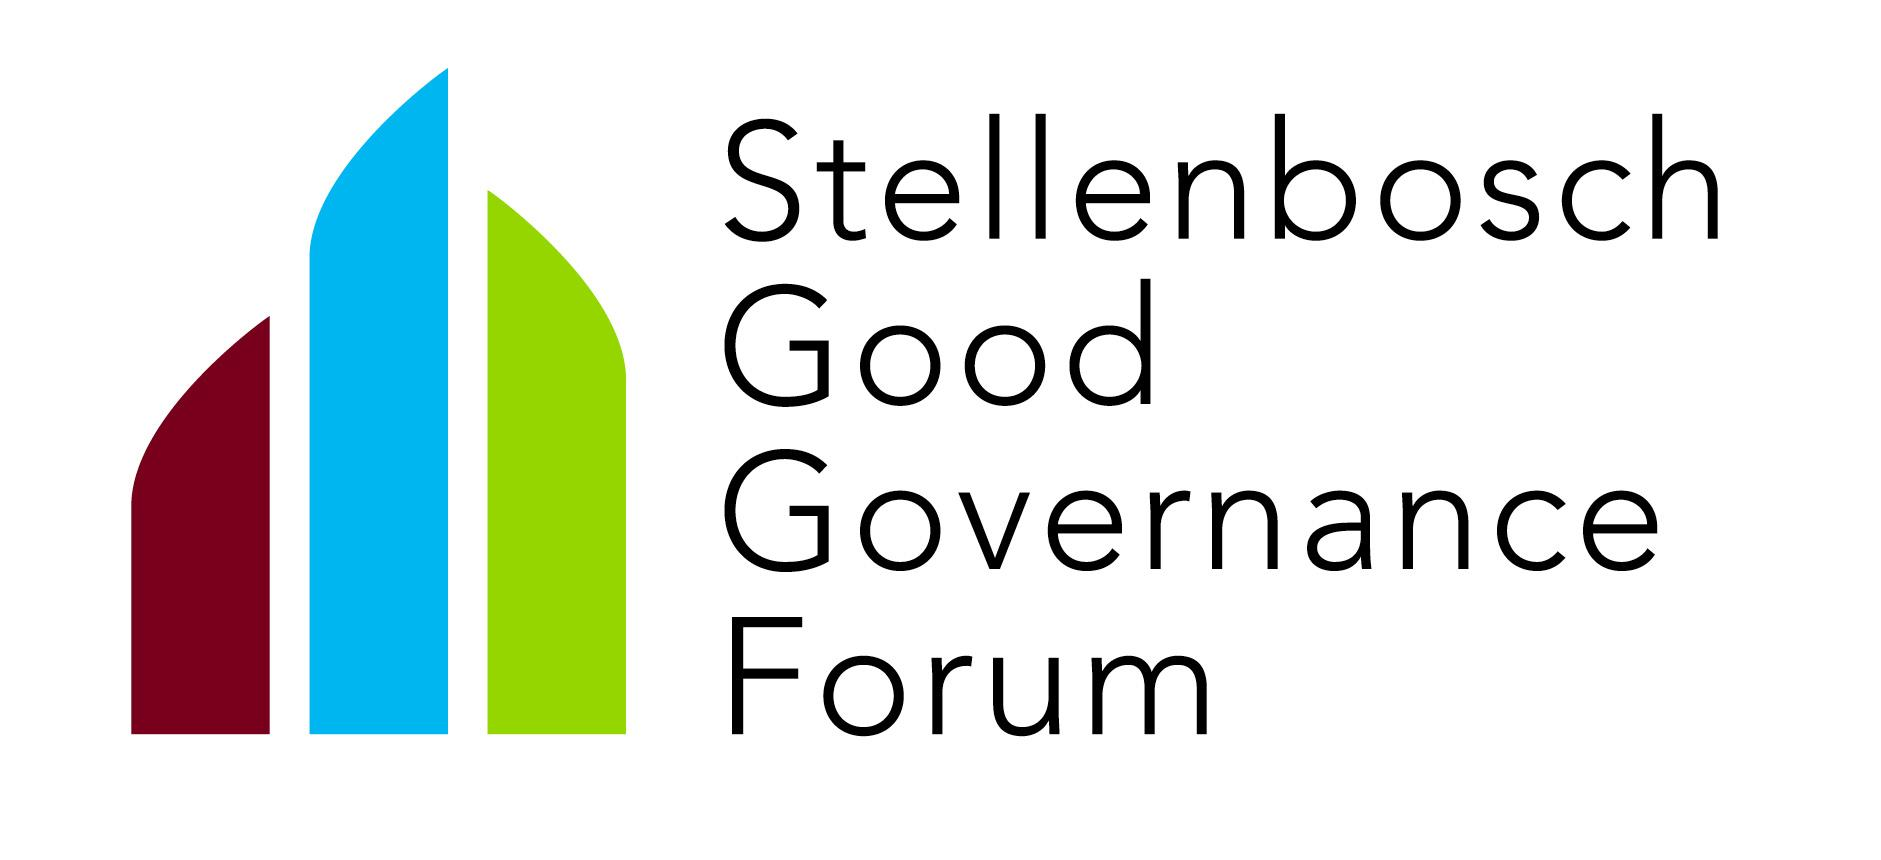 Stellenbosch Good Governance Forum (SGGF)